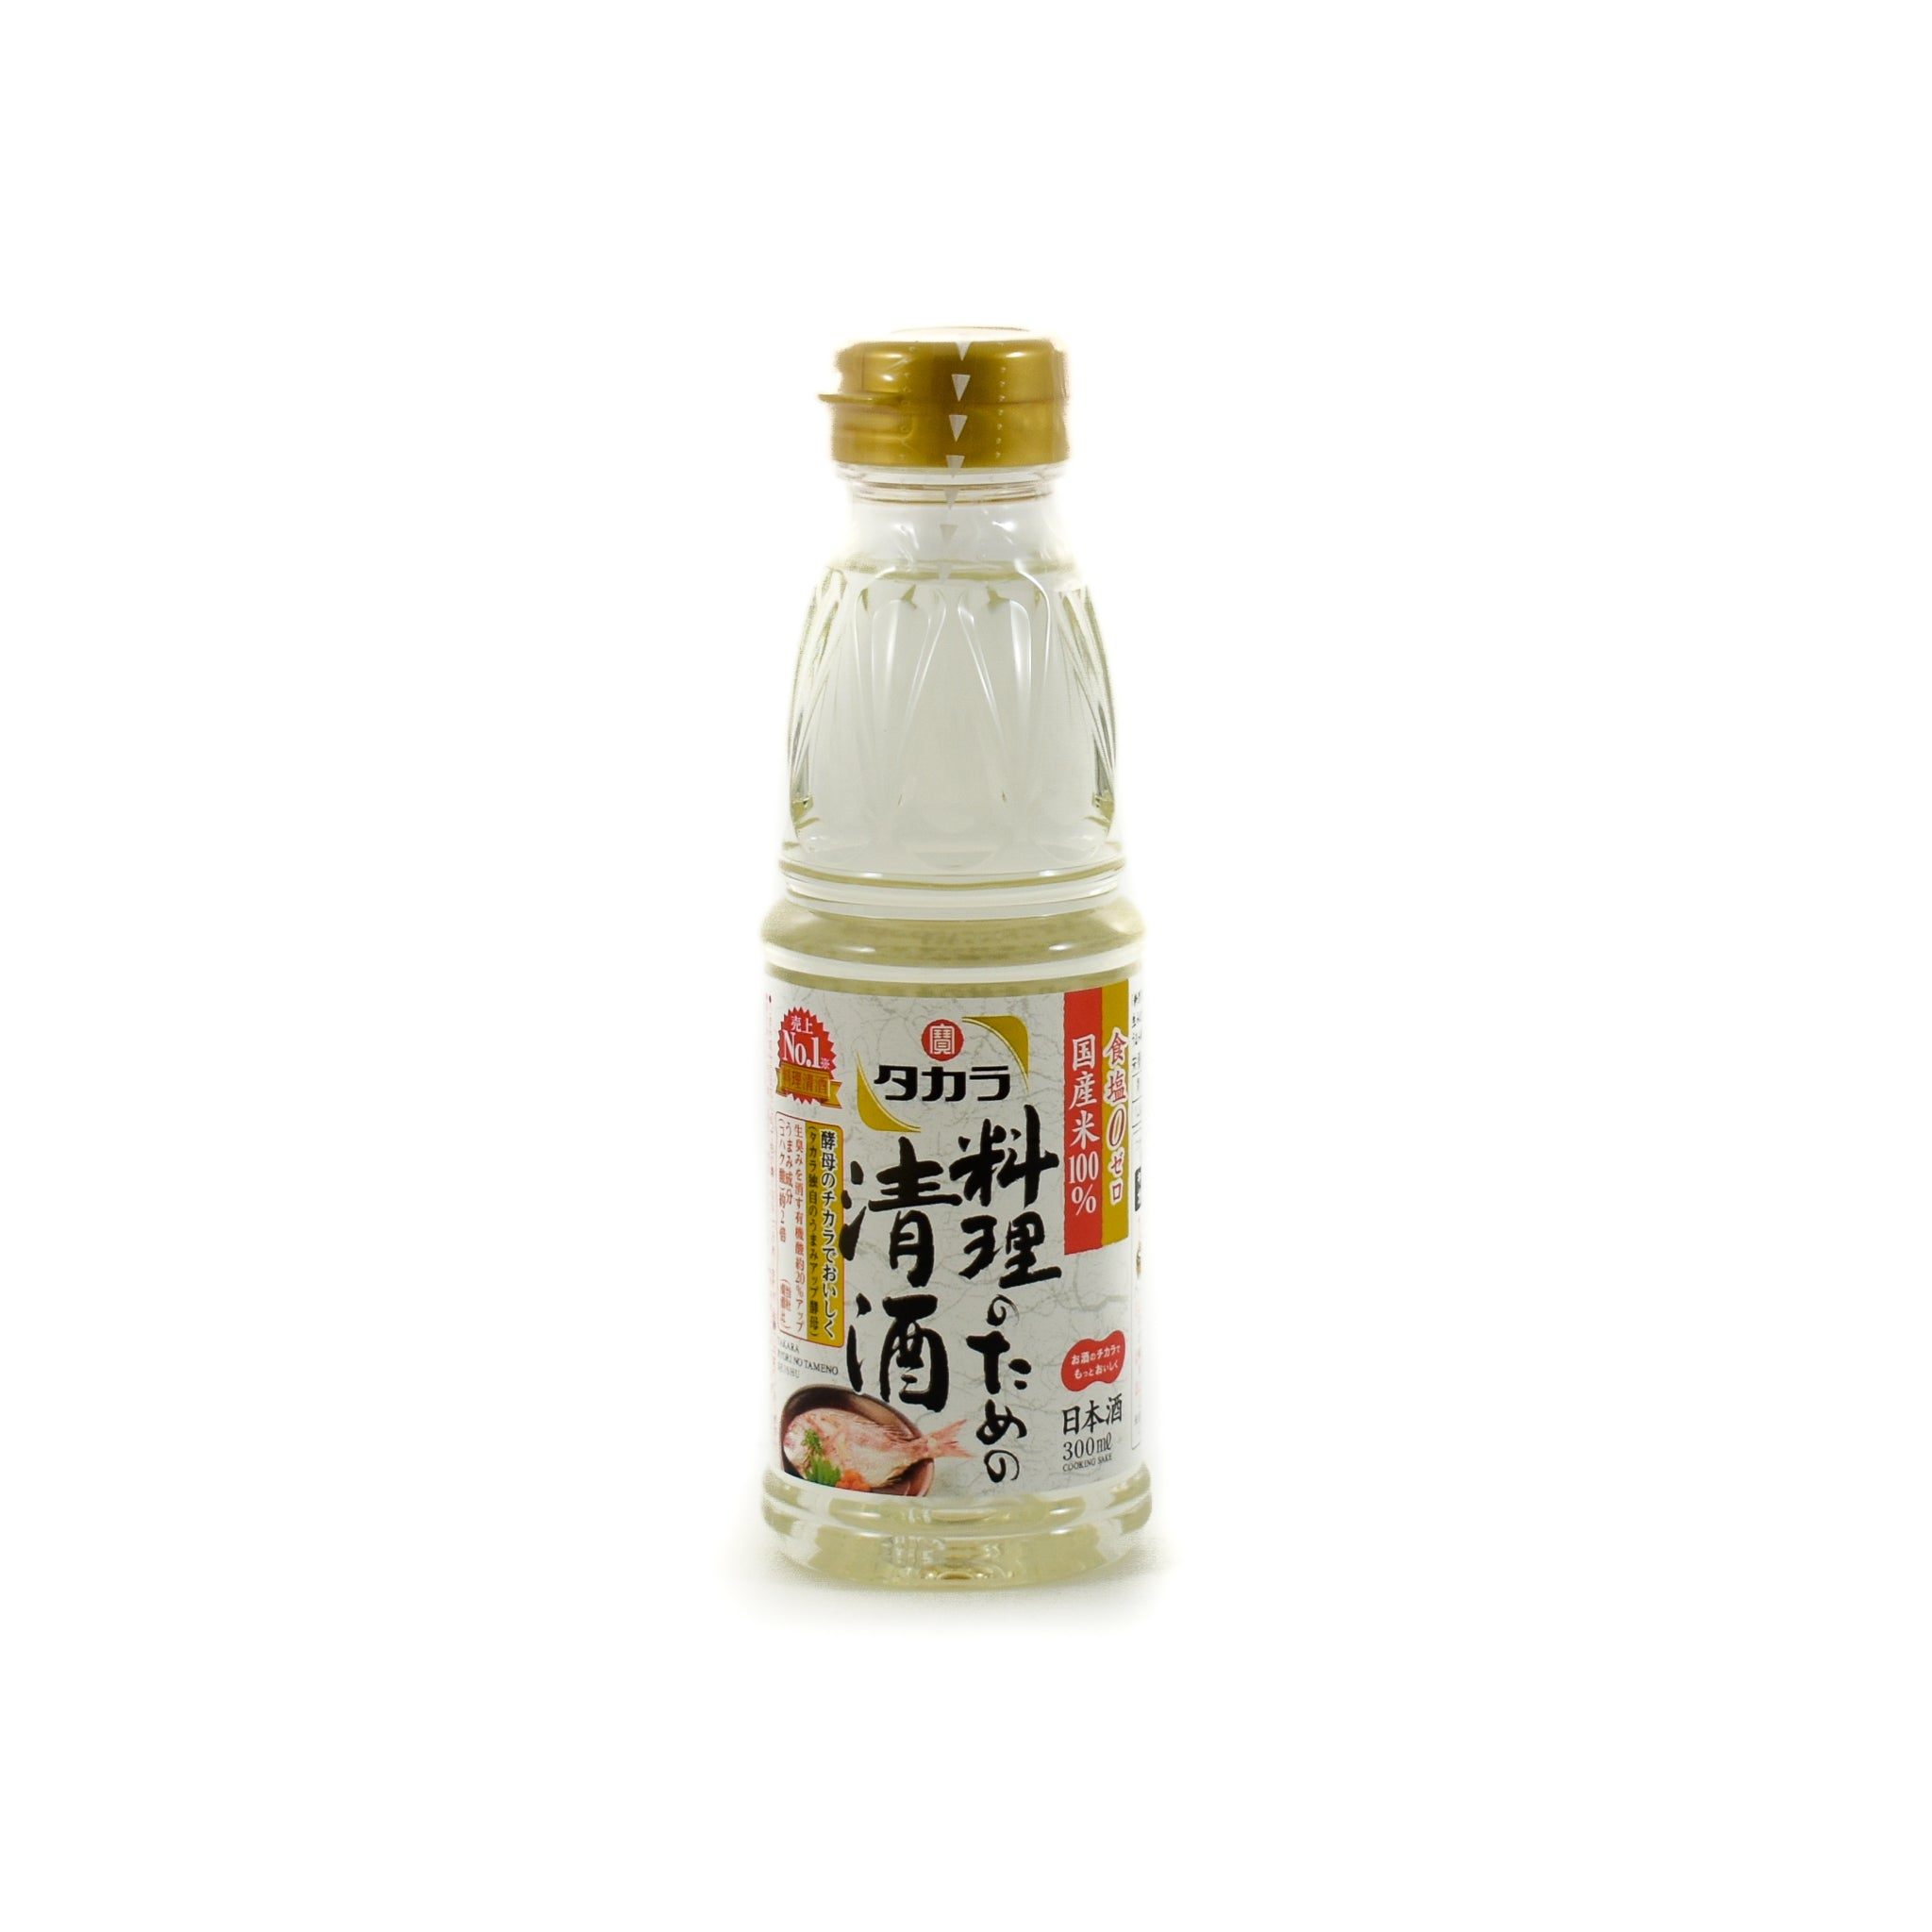 Takara Cooking Sake – Ryori Shu 13-14%, 300ml